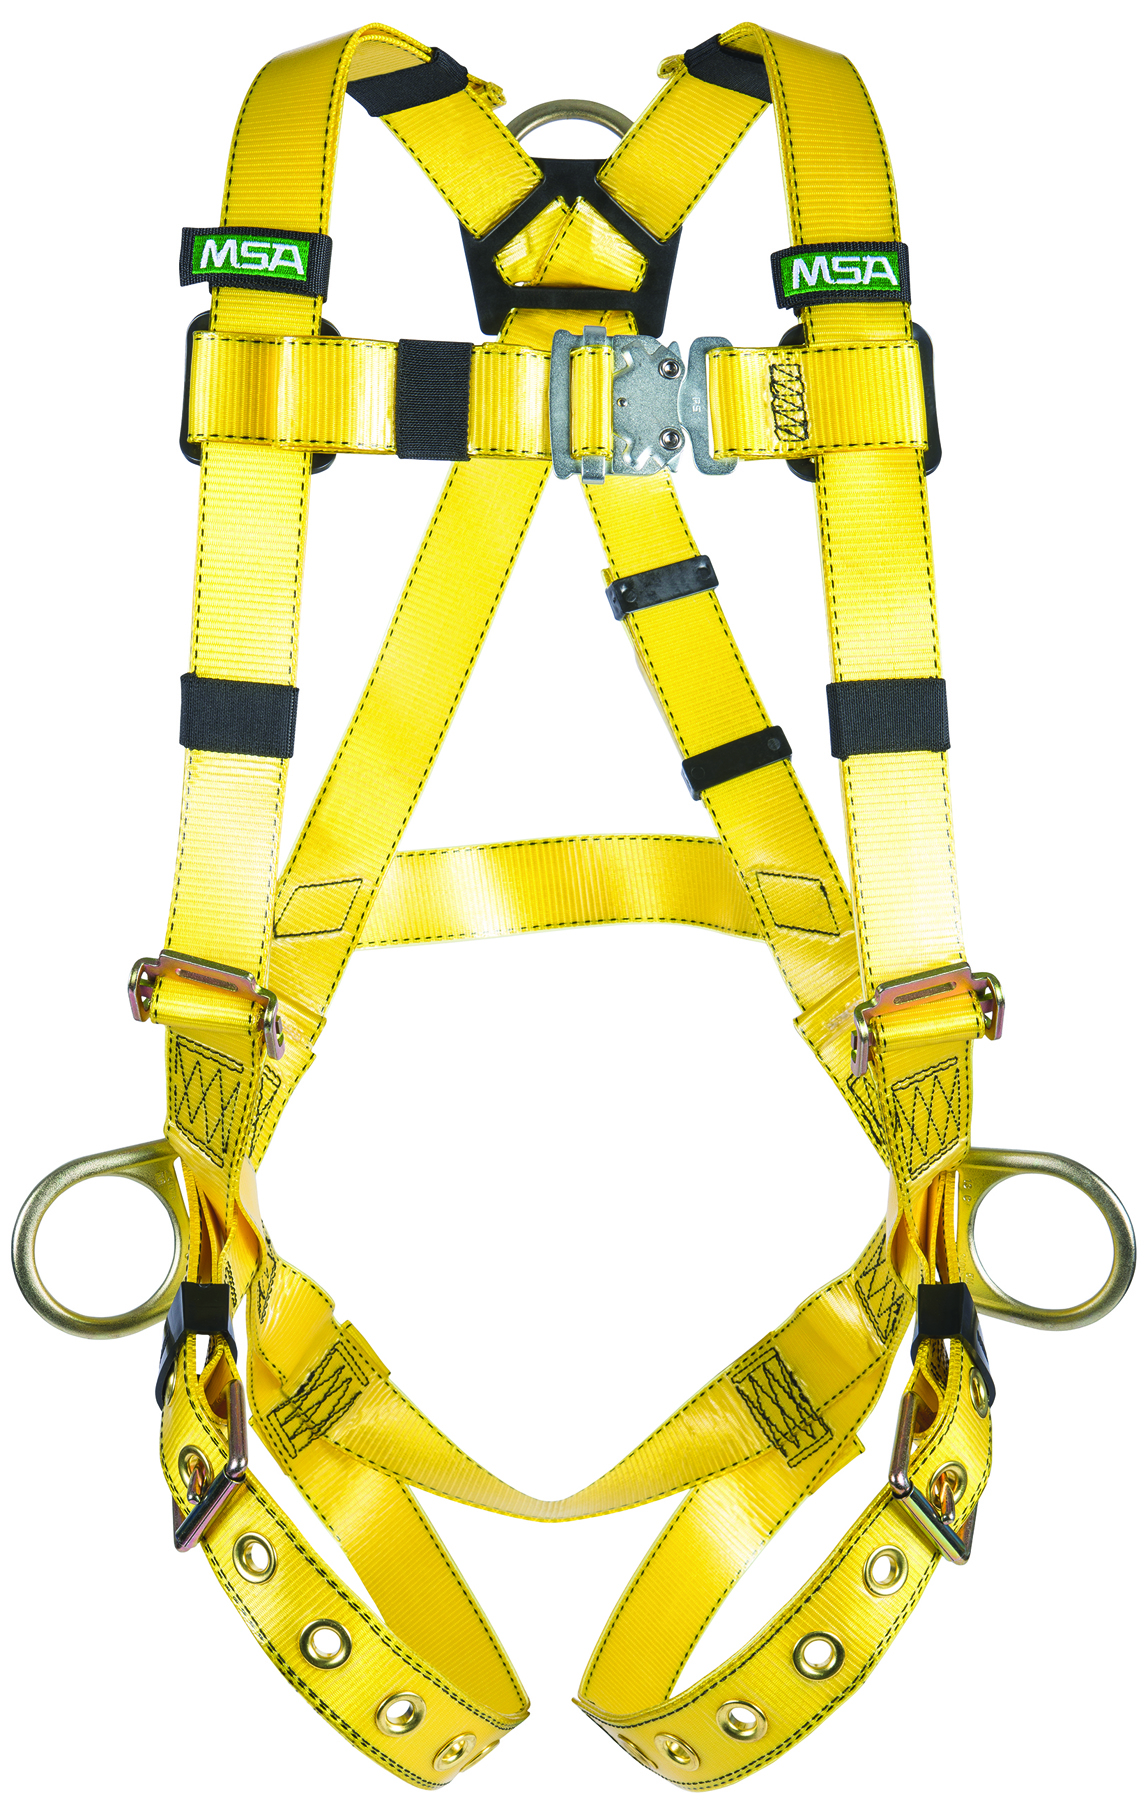 10155875 - Gravity® Harnesses-Gravity® Harness-Standard Size, Yellow Vest-Type, with BACK & HIP D-Rings and Tongue Buckle Leg Straps----UOM: 1/EA